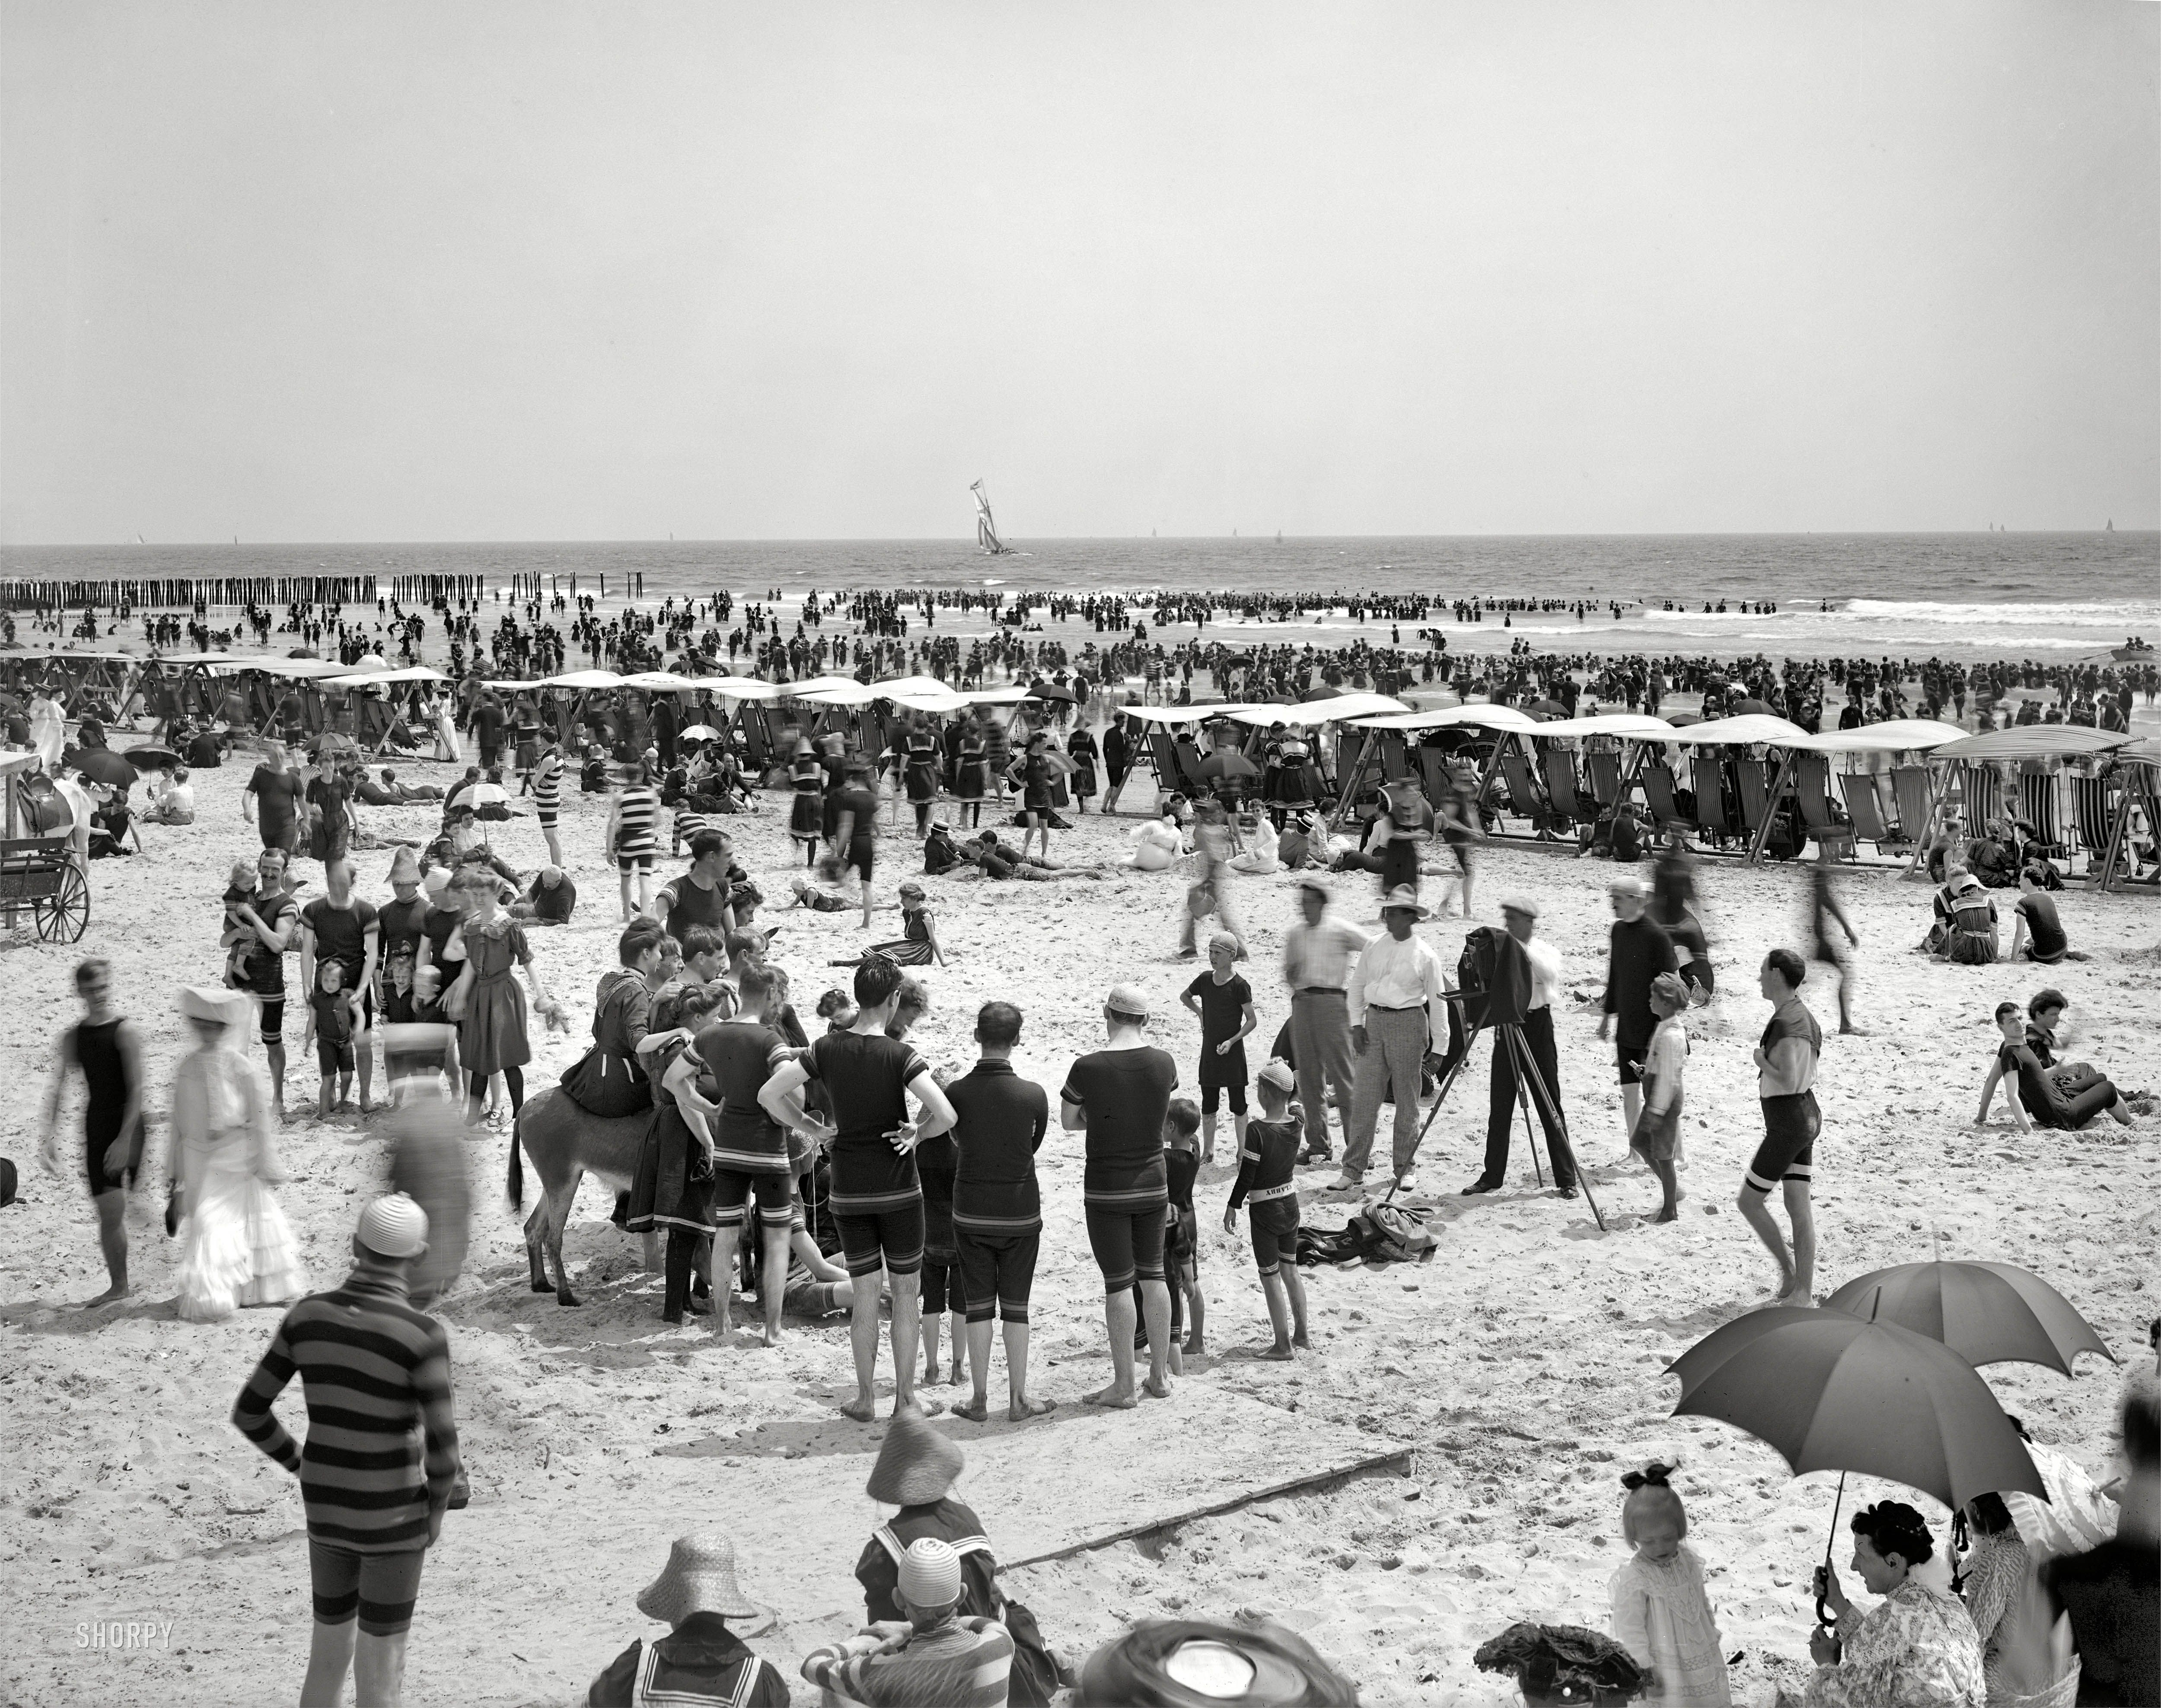 Shorpy historical photo archive seasons in the sun